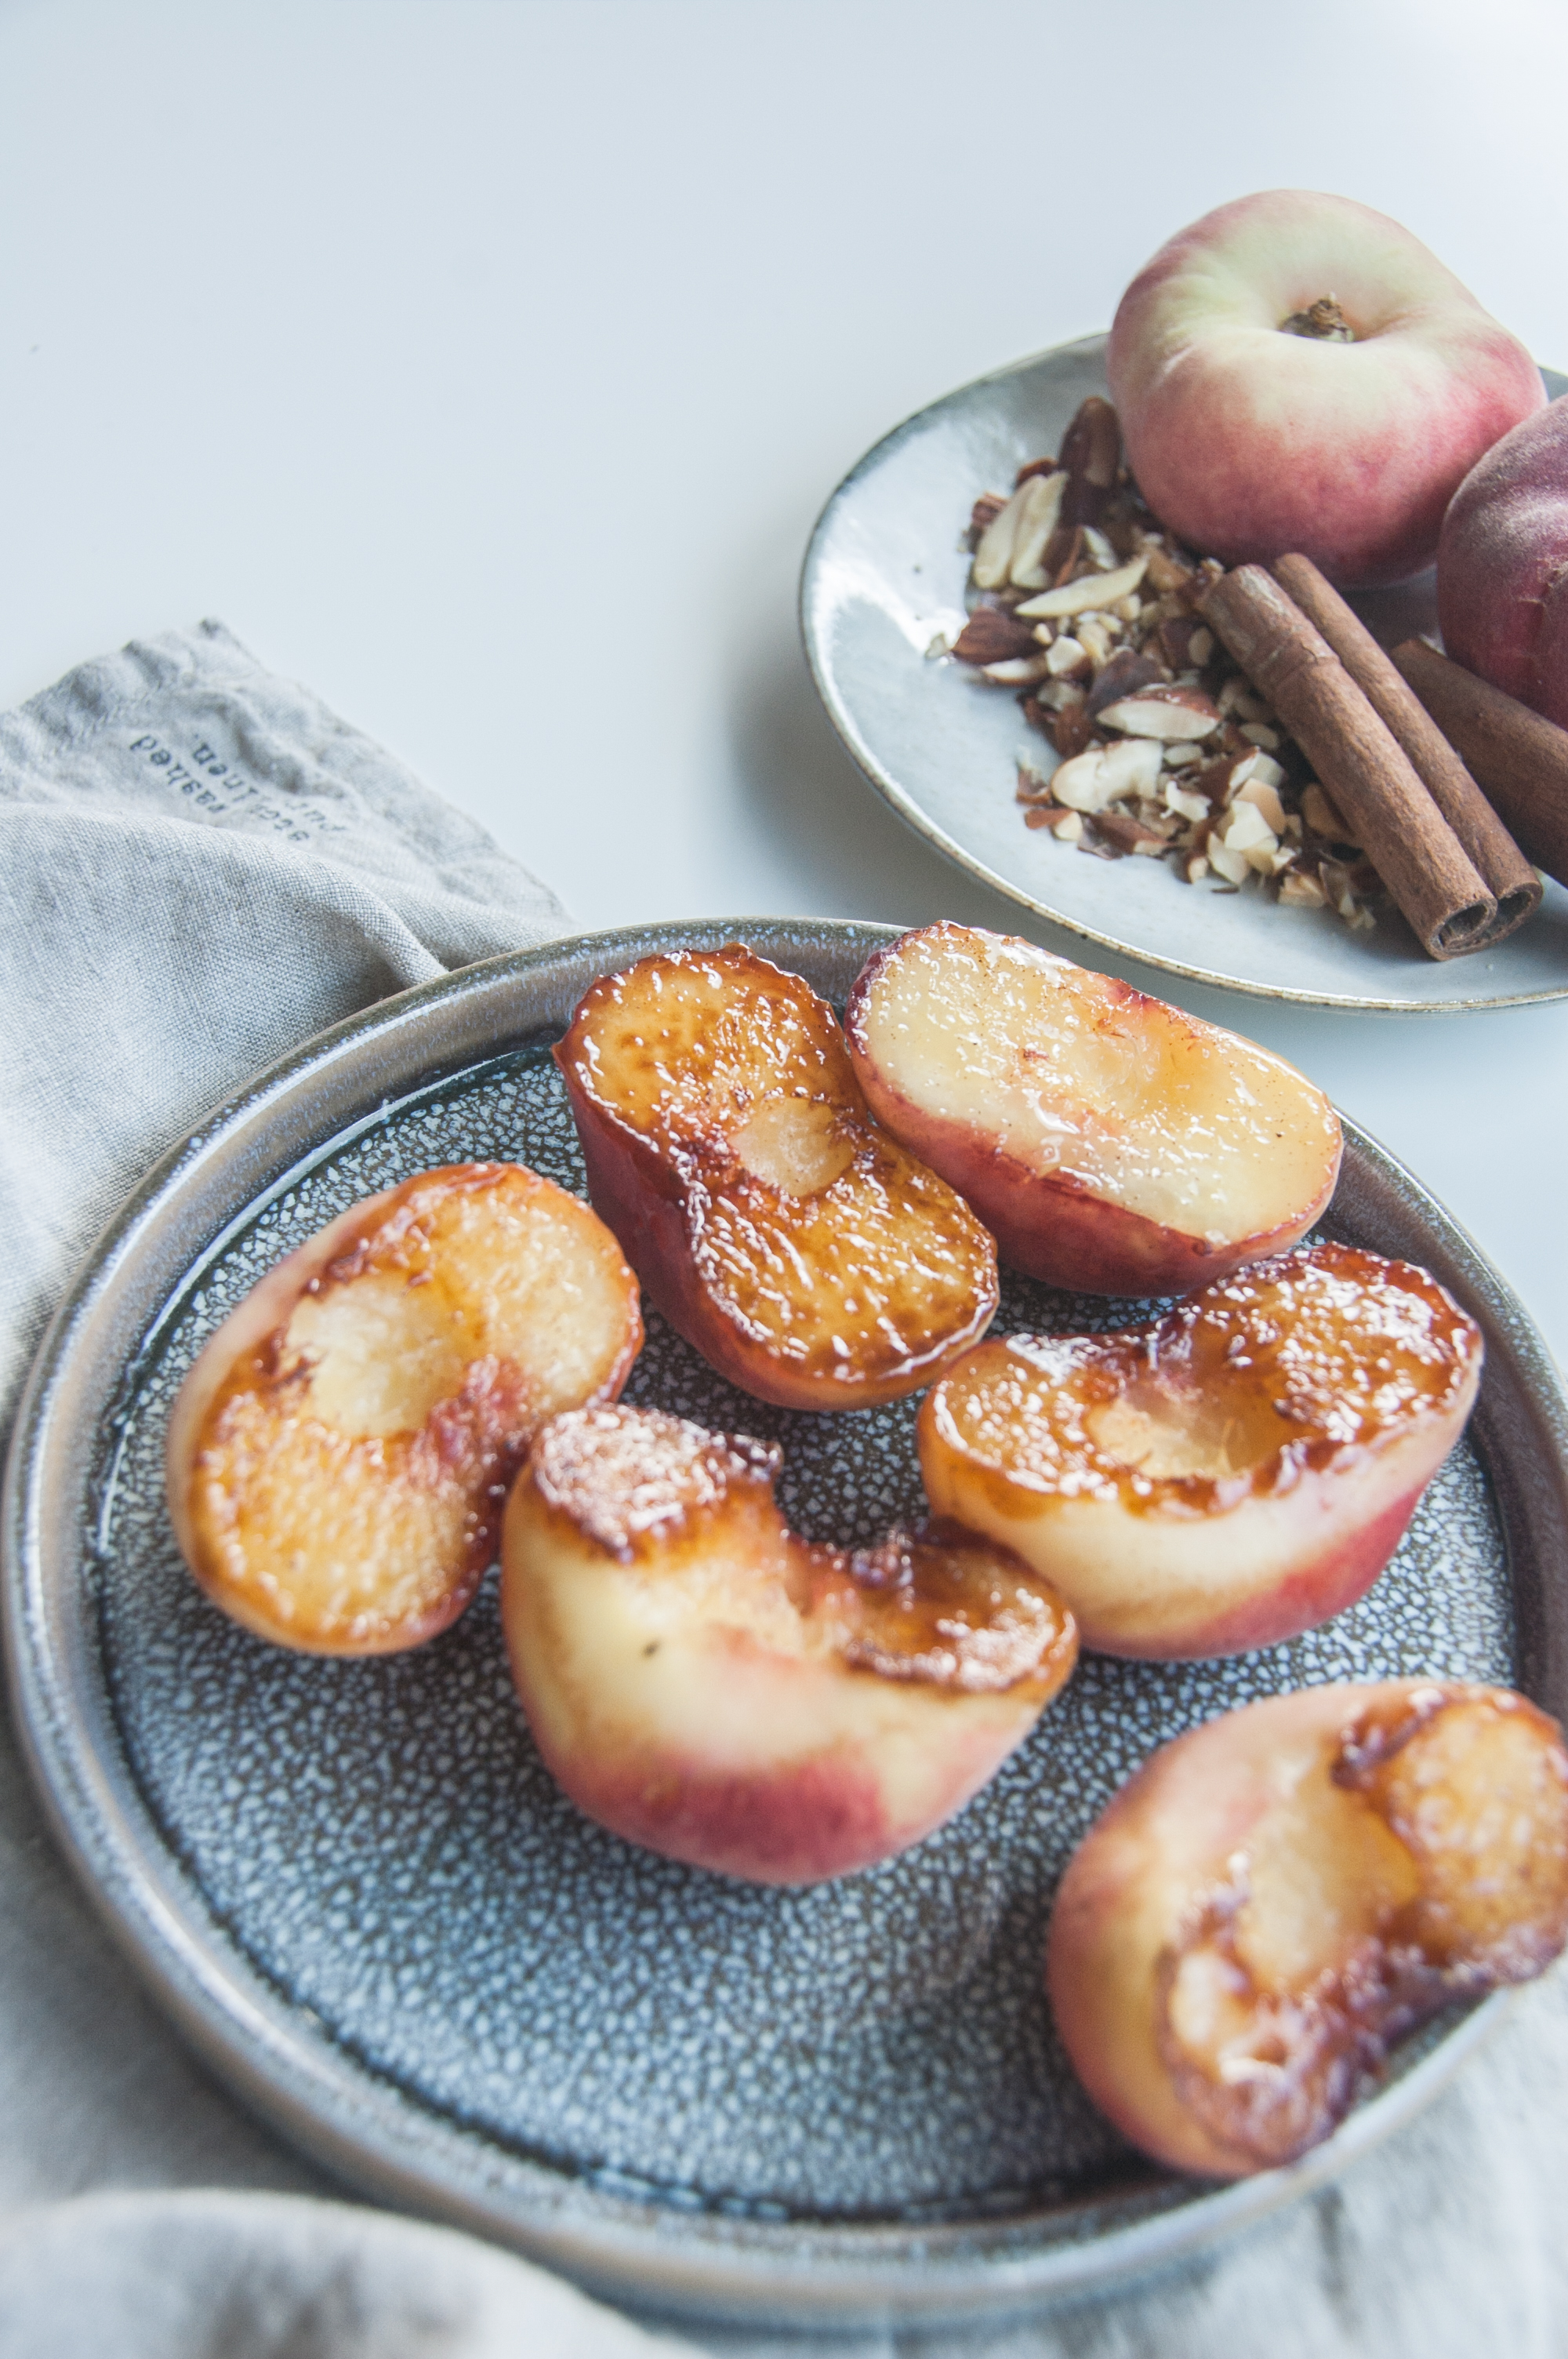 caramelized peach porridge makes a bowl of pure comfort and joy.